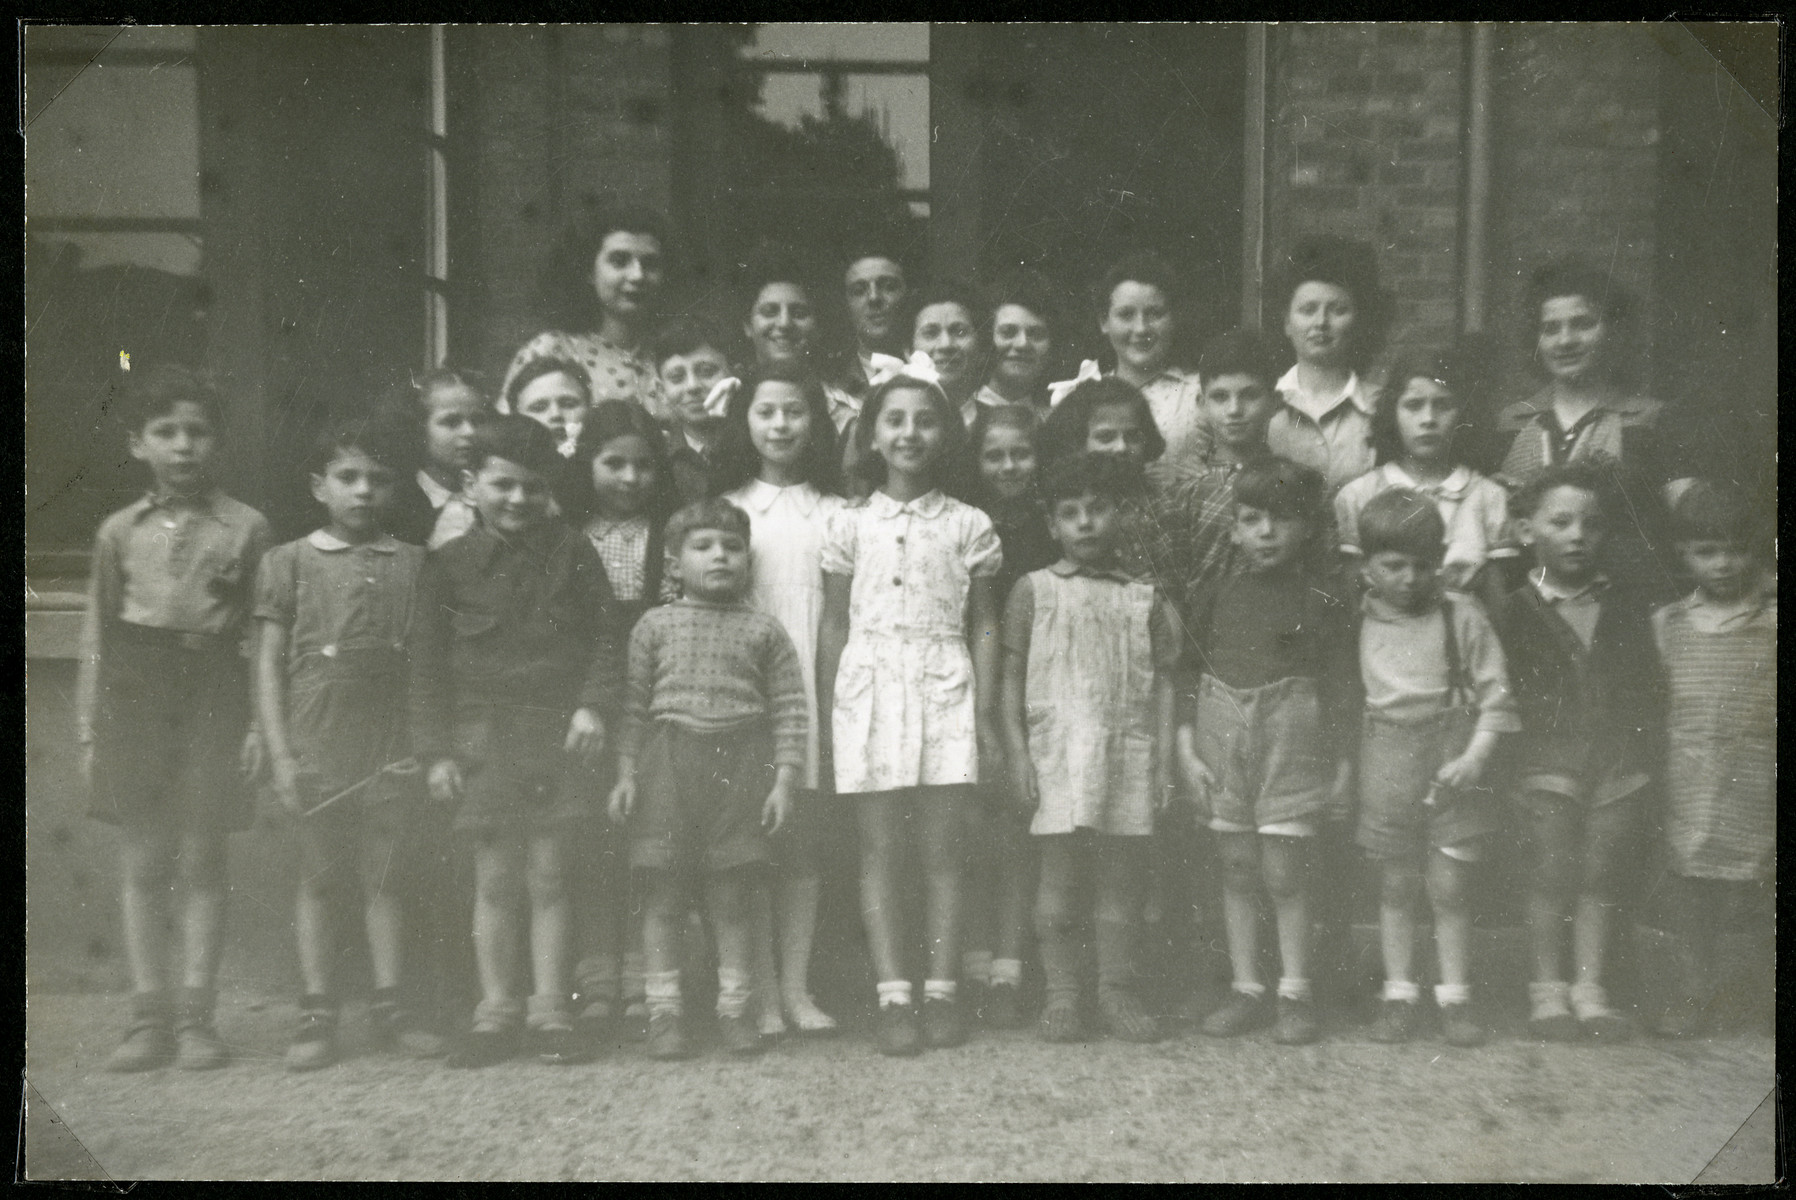 Group portrait of school children standing outside a building in an unidentified displaced persons camp.